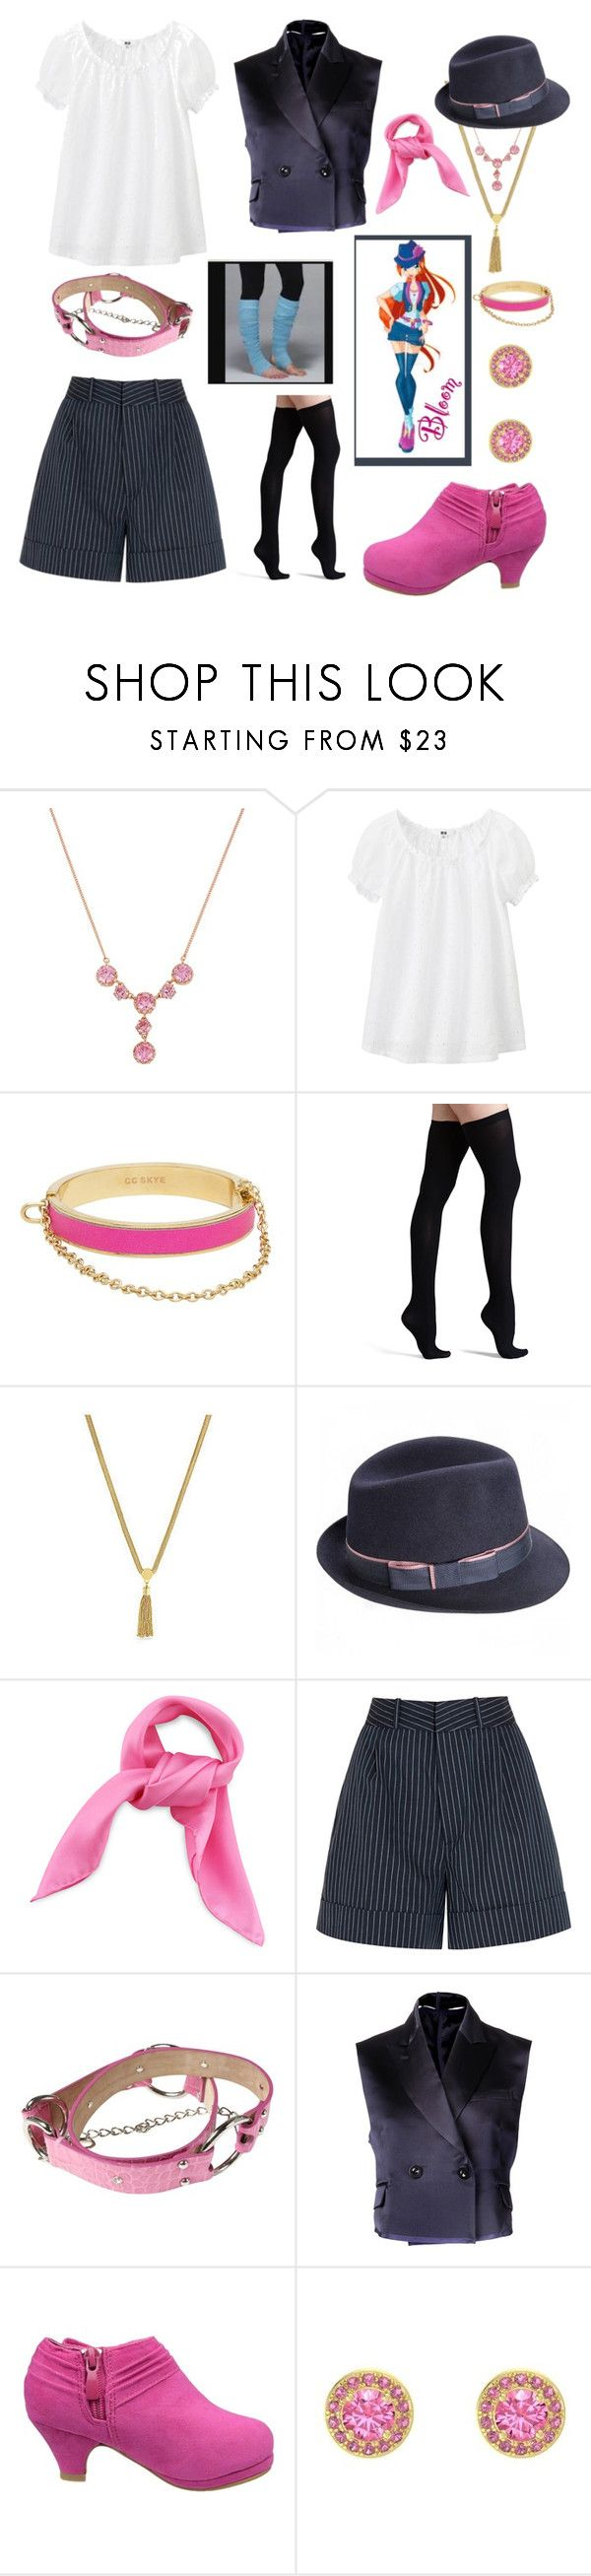 """""""Bloom Winx Club for my daughter"""" by knightwolves ❤ liked on Polyvore featuring Betsey Johnson, Uniqlo, CC SKYE, Commando, Vince Camuto, Totême, Dolce&Gabbana, Sacai and Gemvara"""